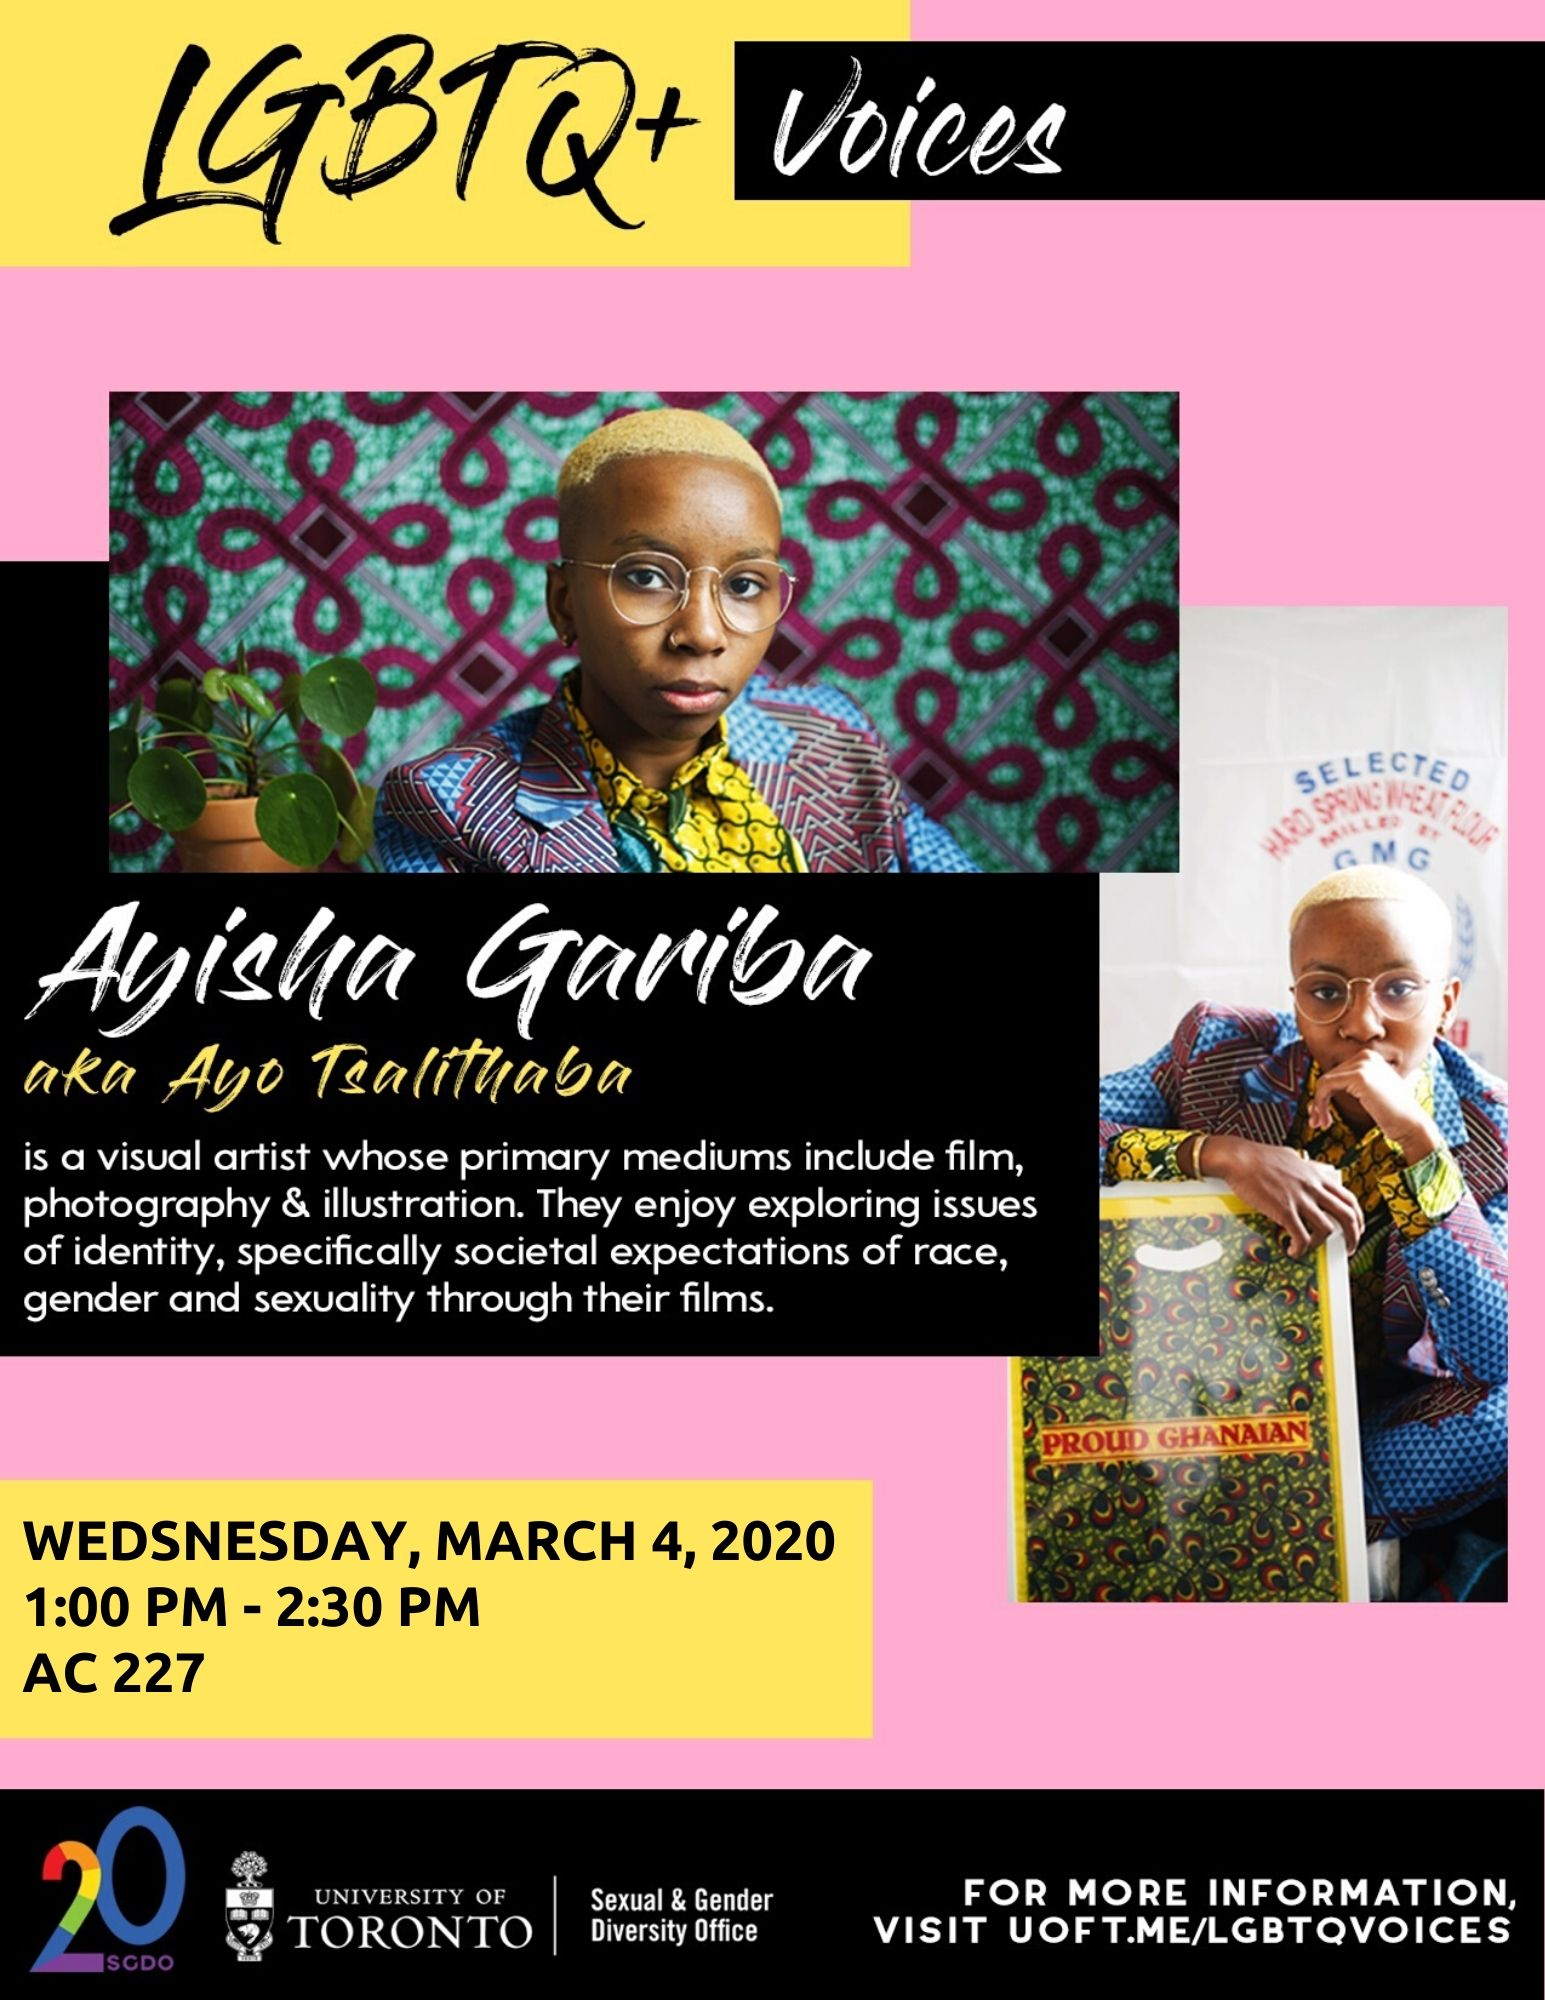 LGBTQ+ Voices Featuring the Works of Ayisha Gariba on March 4, 2020 from 1 - 2:30 pm in AC 227.